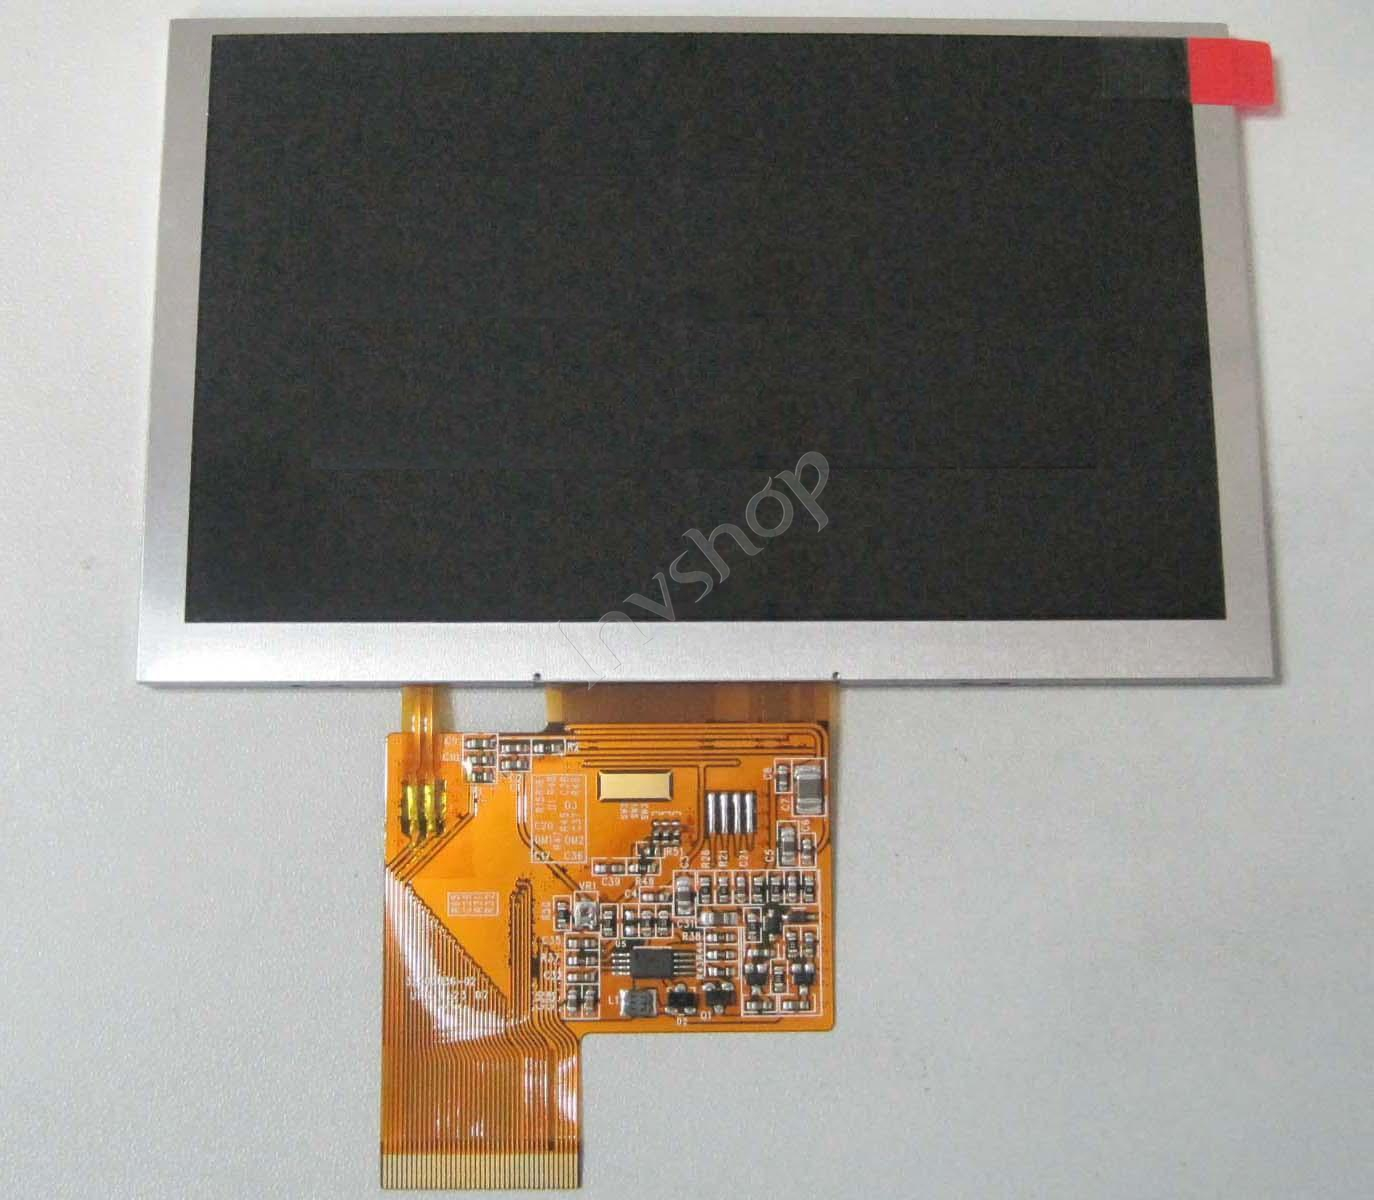 AT050TN43 V.1 Chimei Innolux 5inch lcd display AT050TN43 V1